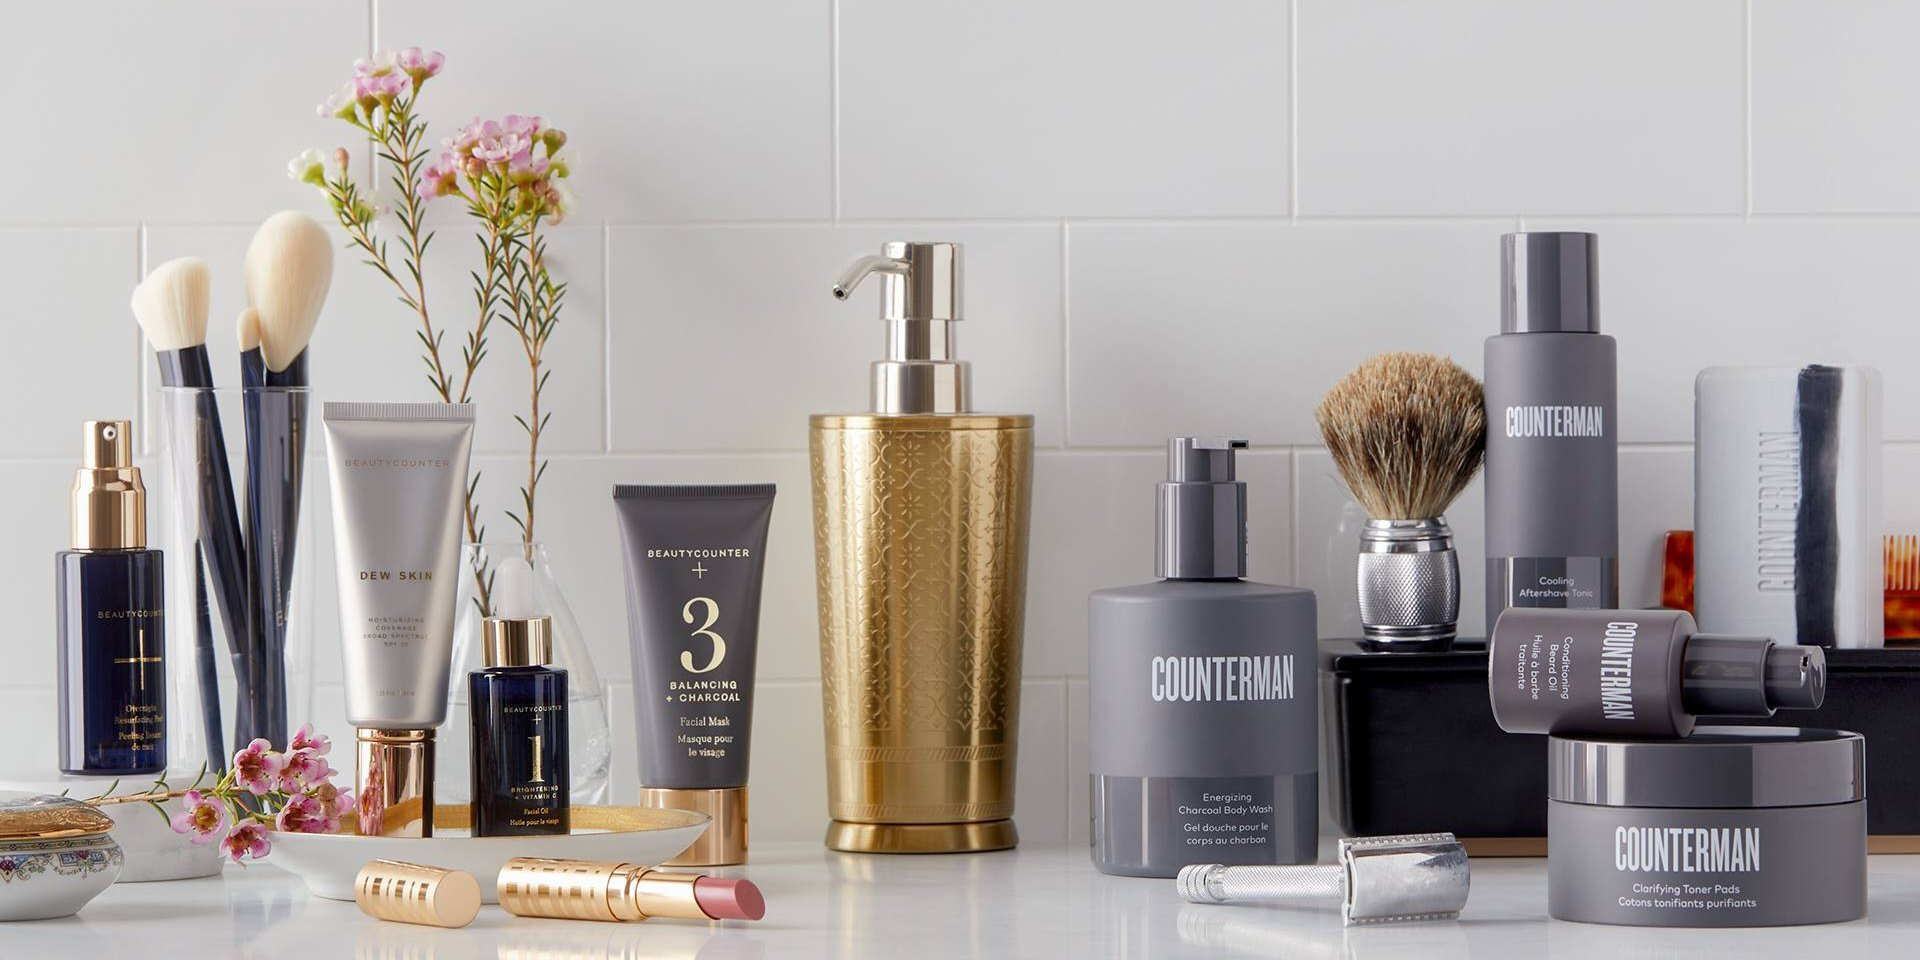 BEAUTYCOUNTERSafer Personal Care Products for Men, Women, and Children - - Skincare- Cosmetics- Bath, Body , & Hair- Baby and Kids- Men's Line- Limited Edition Holiday Gifts